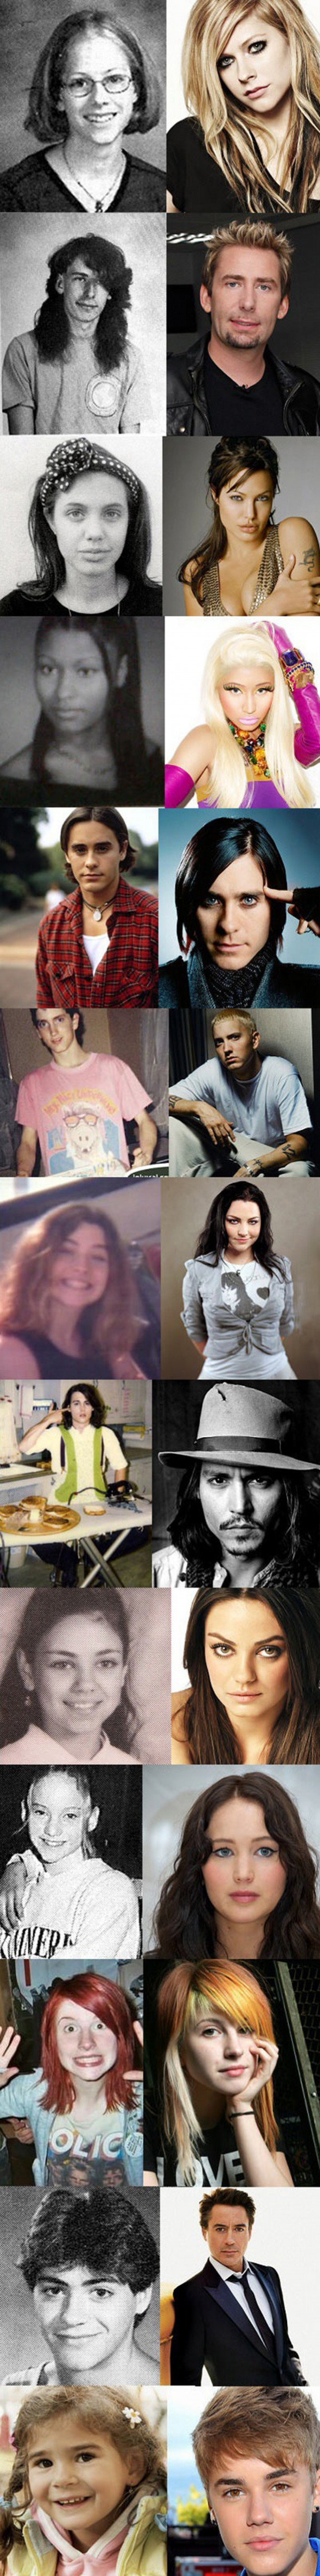 Celebrities – Now and Then